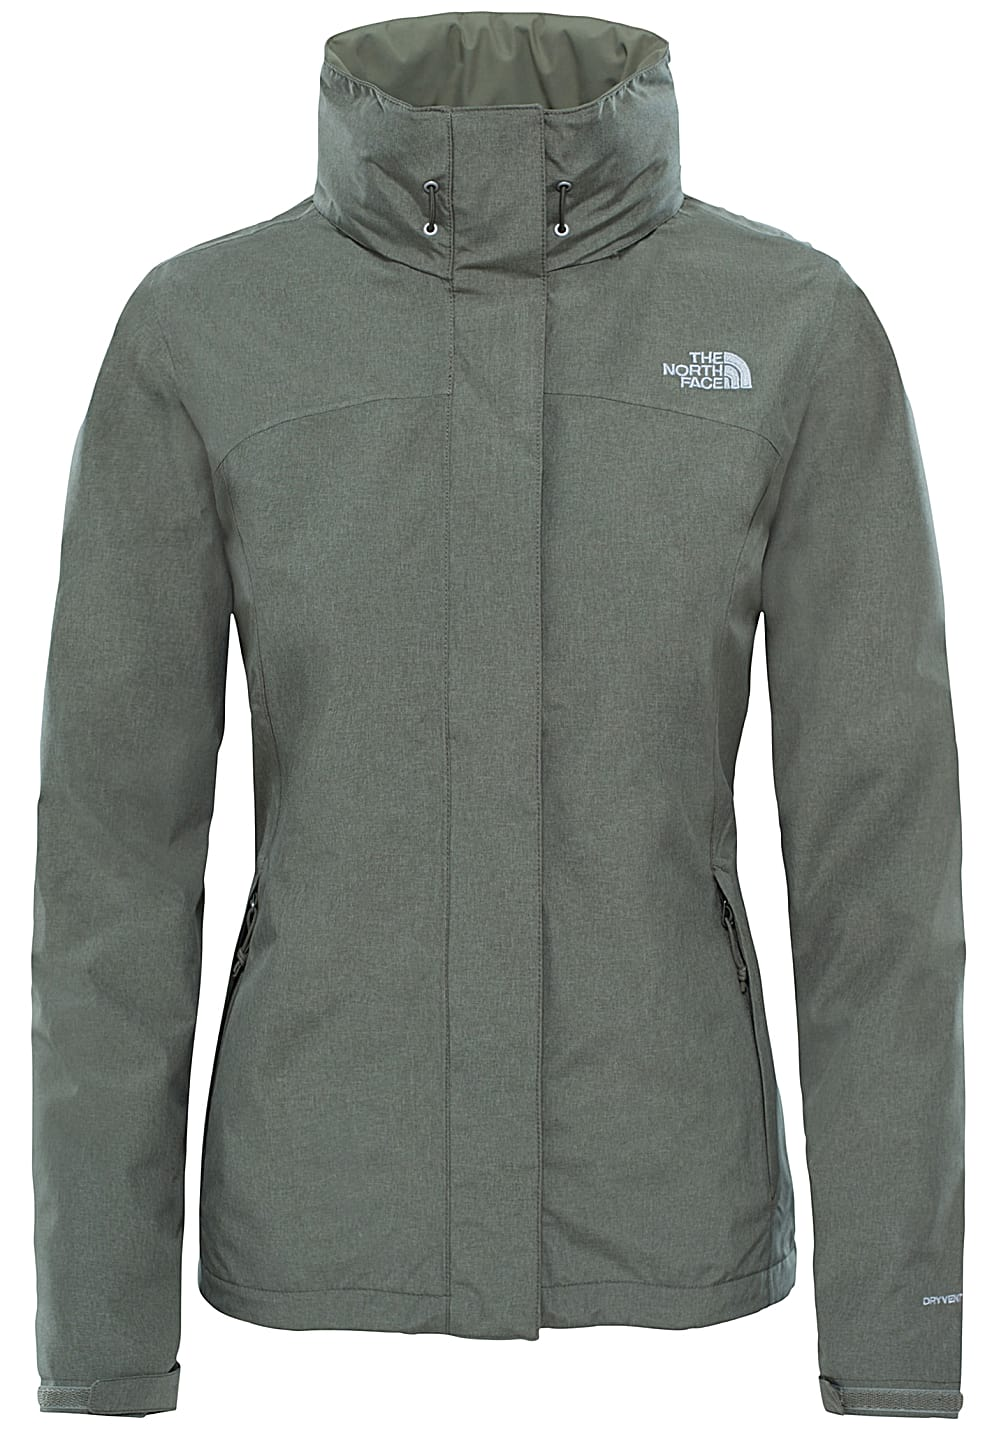 THE NORTH FACE Sangro - Funktionsjacke für Damen Grün